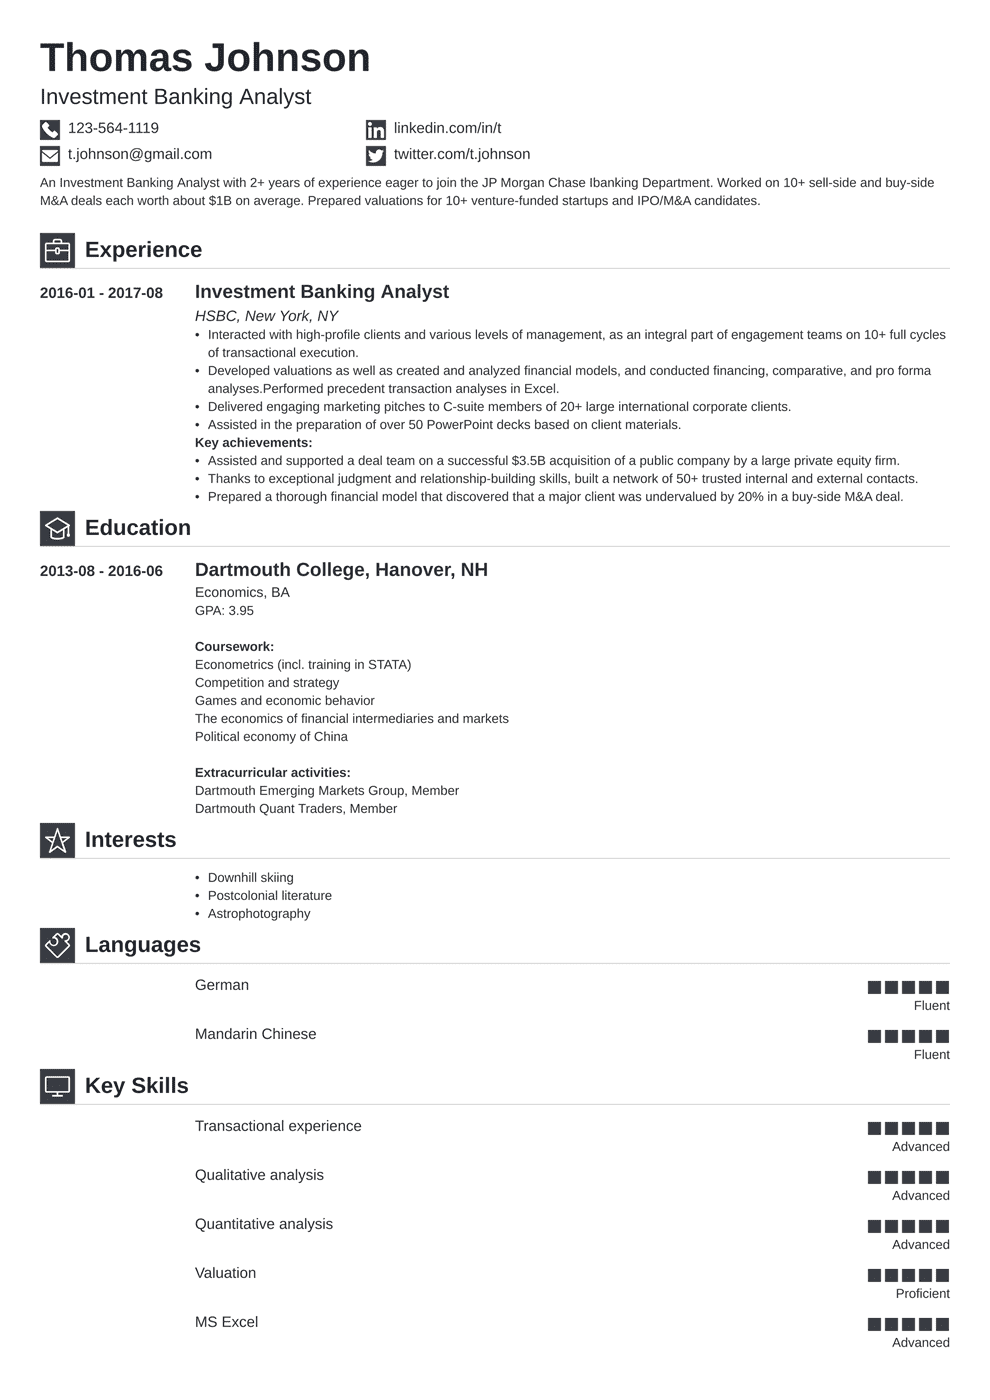 Investment Banking Resume: Sample and Writing Guide [20+ ...